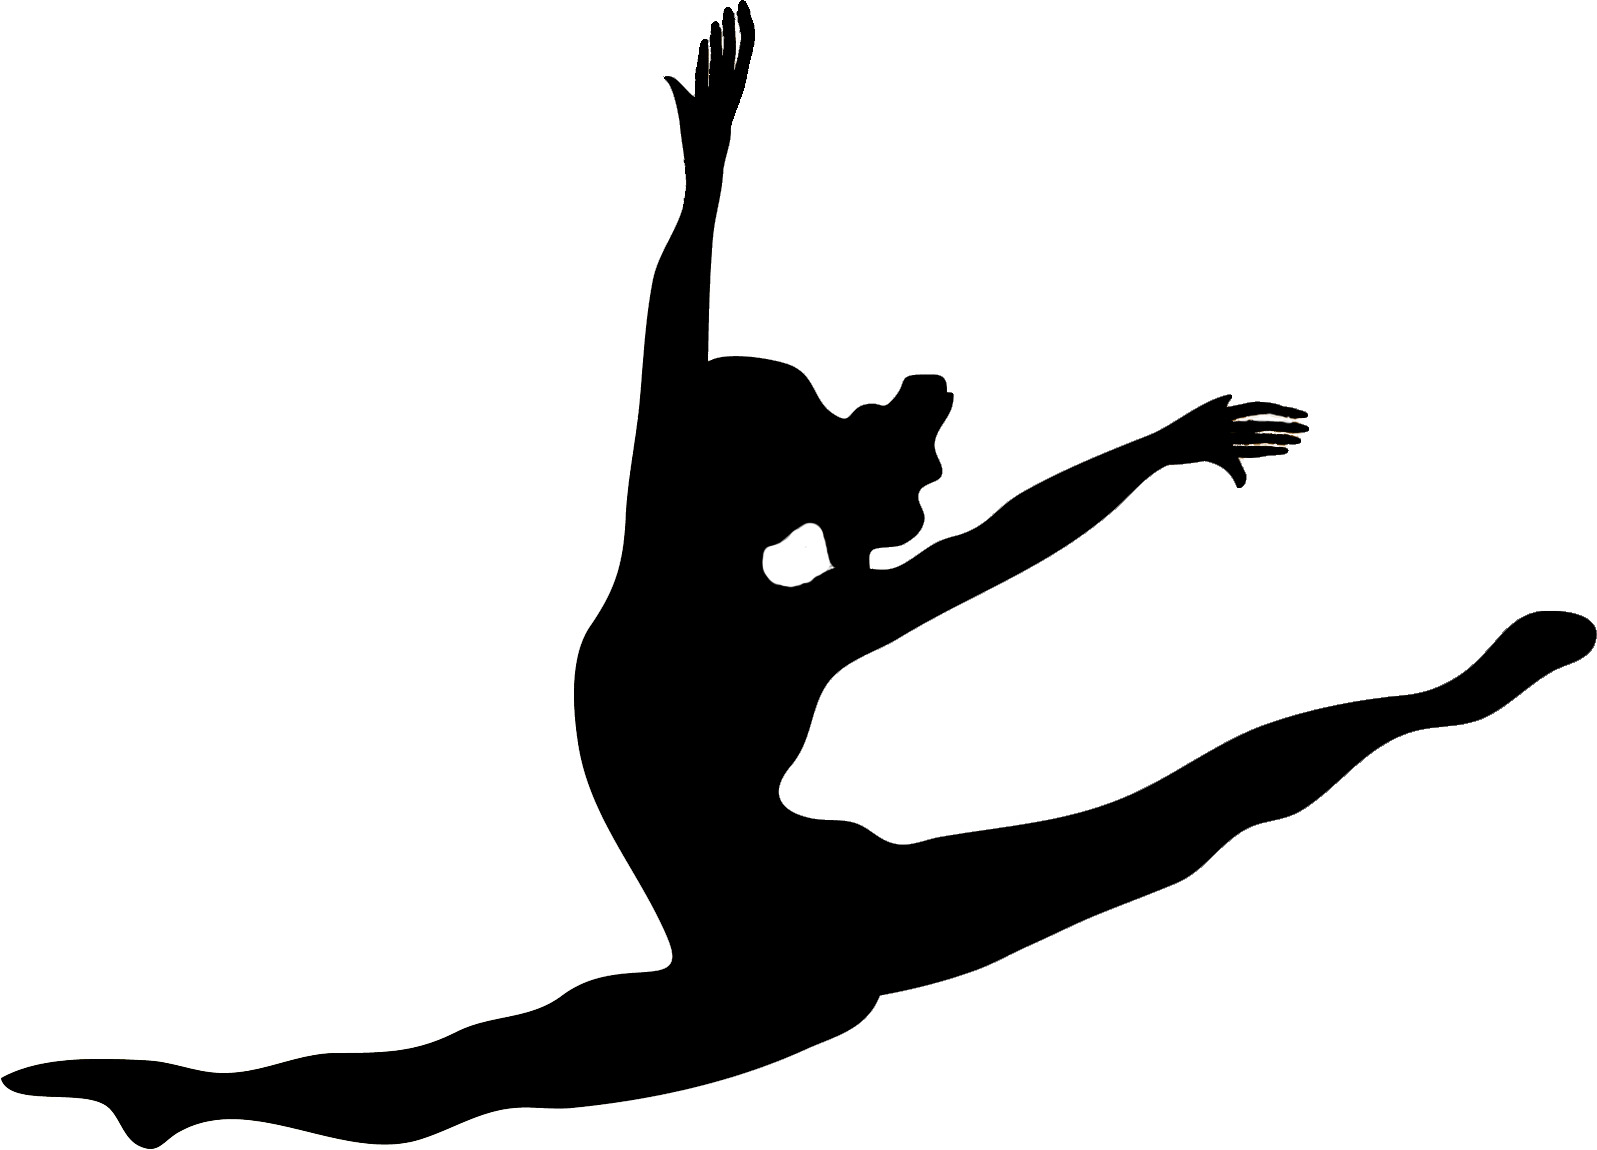 1597x1150 Dance Silhouette Images